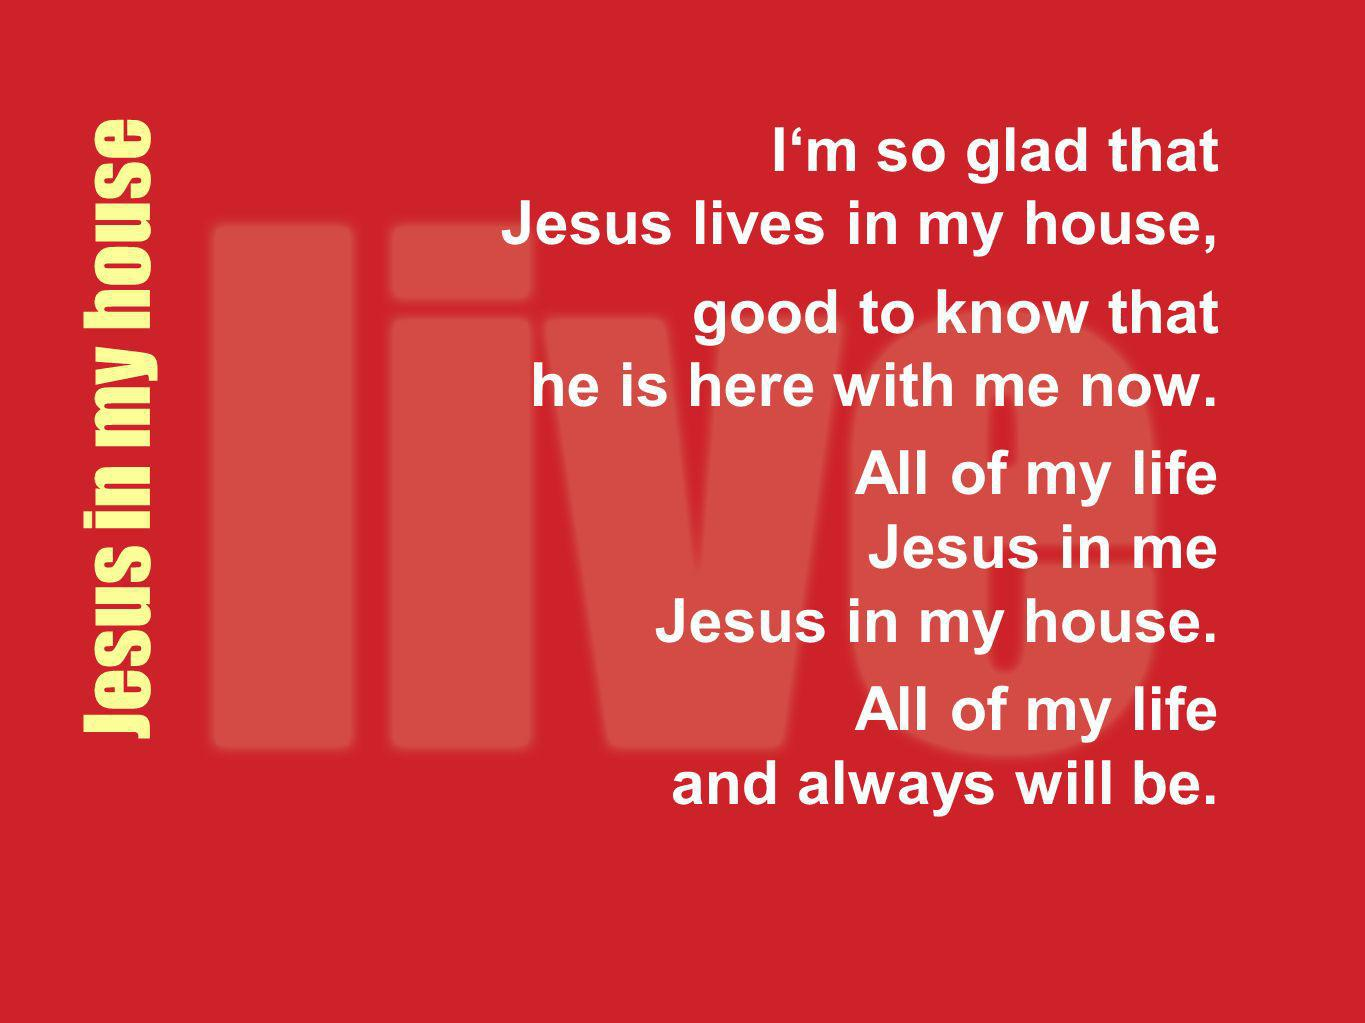 Jesus in my house Im so glad that Jesus lives in my house, good to know that he is here with me now. All of my life Jesus in me Jesus in my house. All